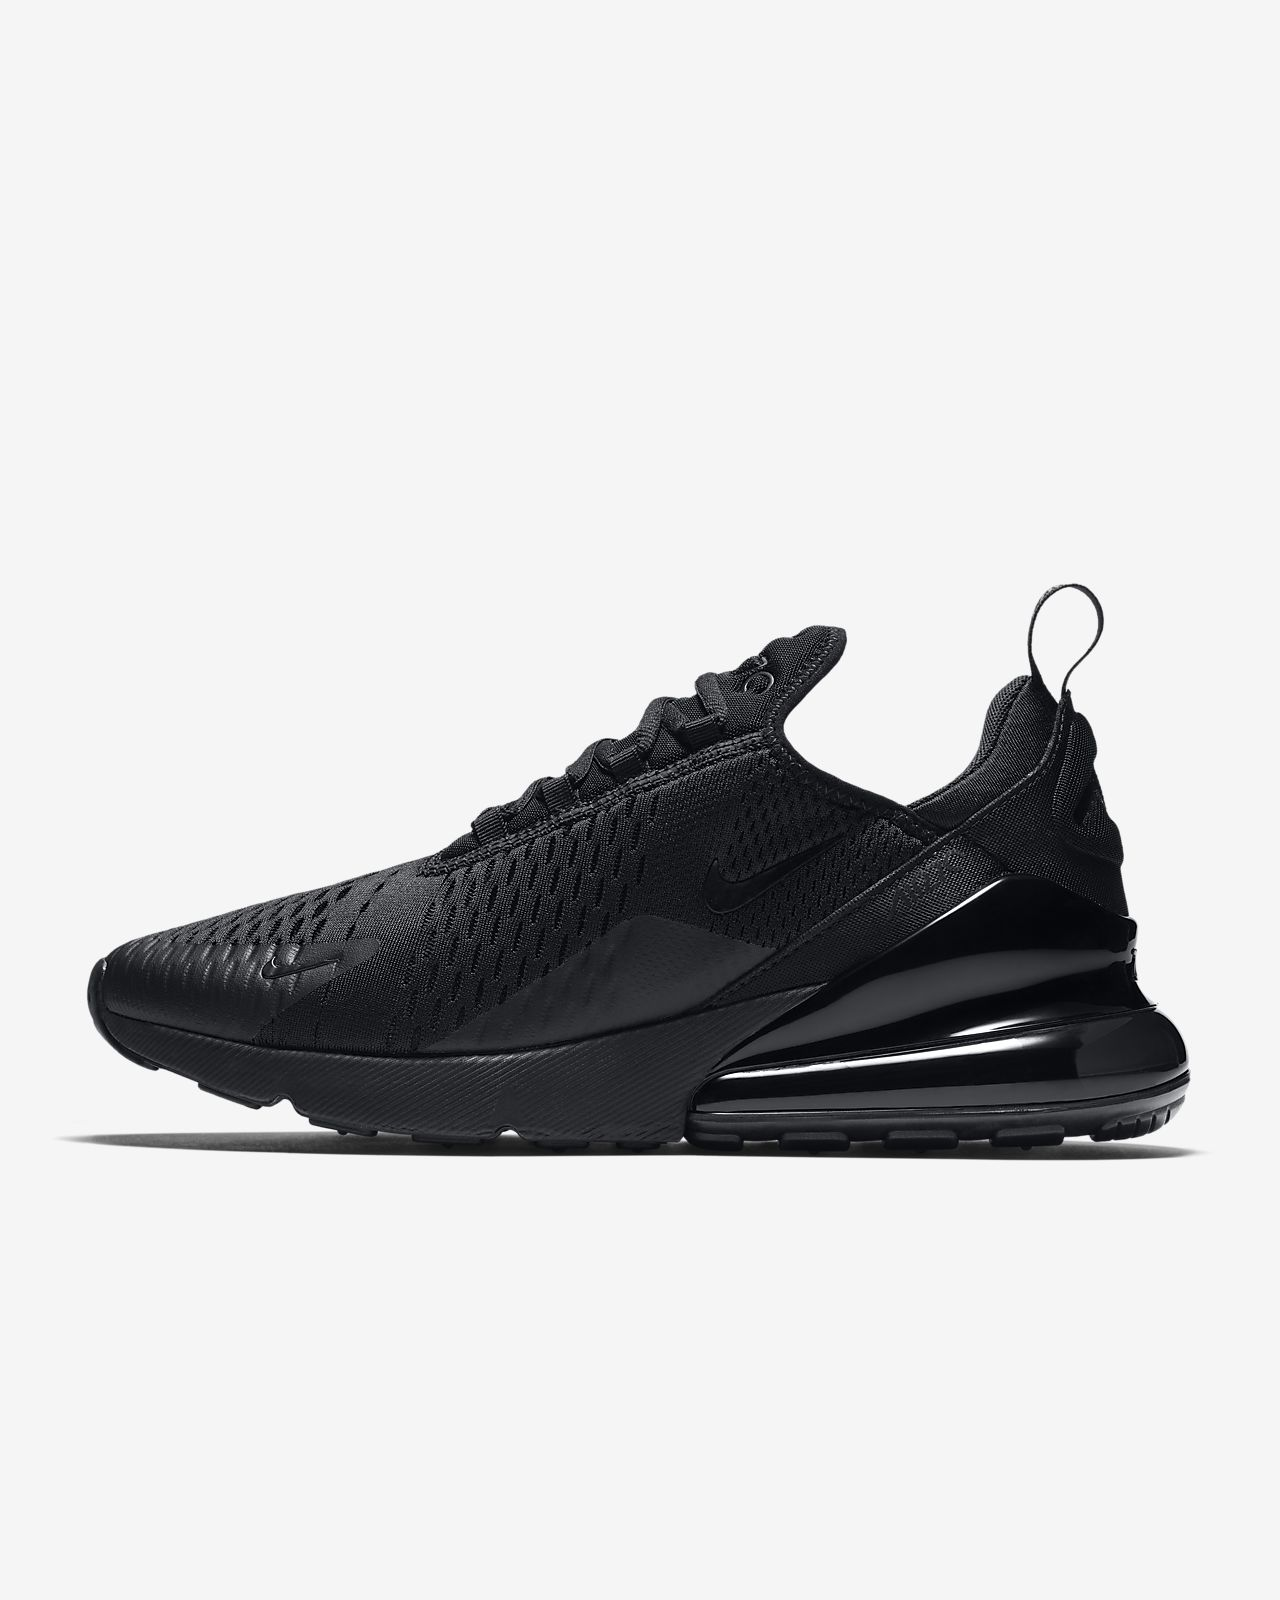 43597024e Nike Air Max 270 Men s Shoe. Nike.com CA